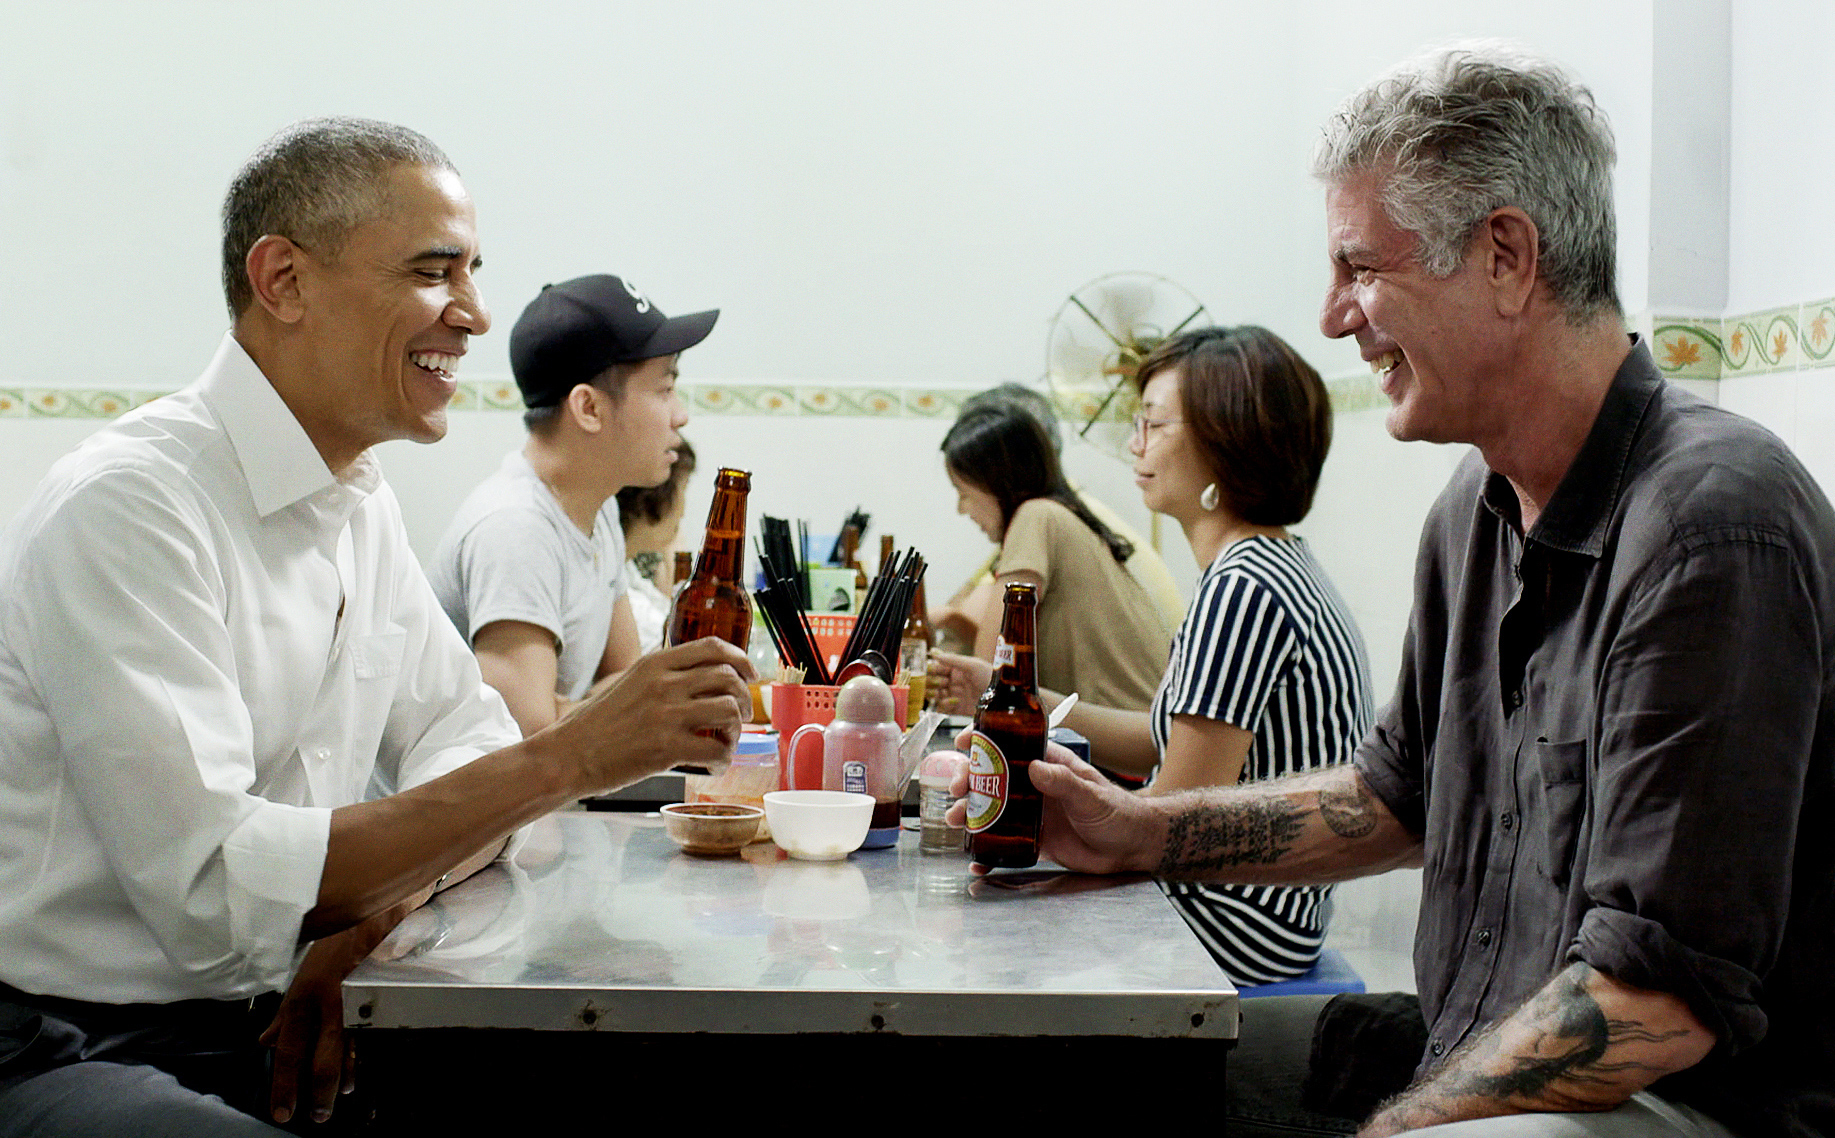 The Table Where Anthony Bourdain and Barack Obama Had Lunch TogetherIs Now Encased in Glass